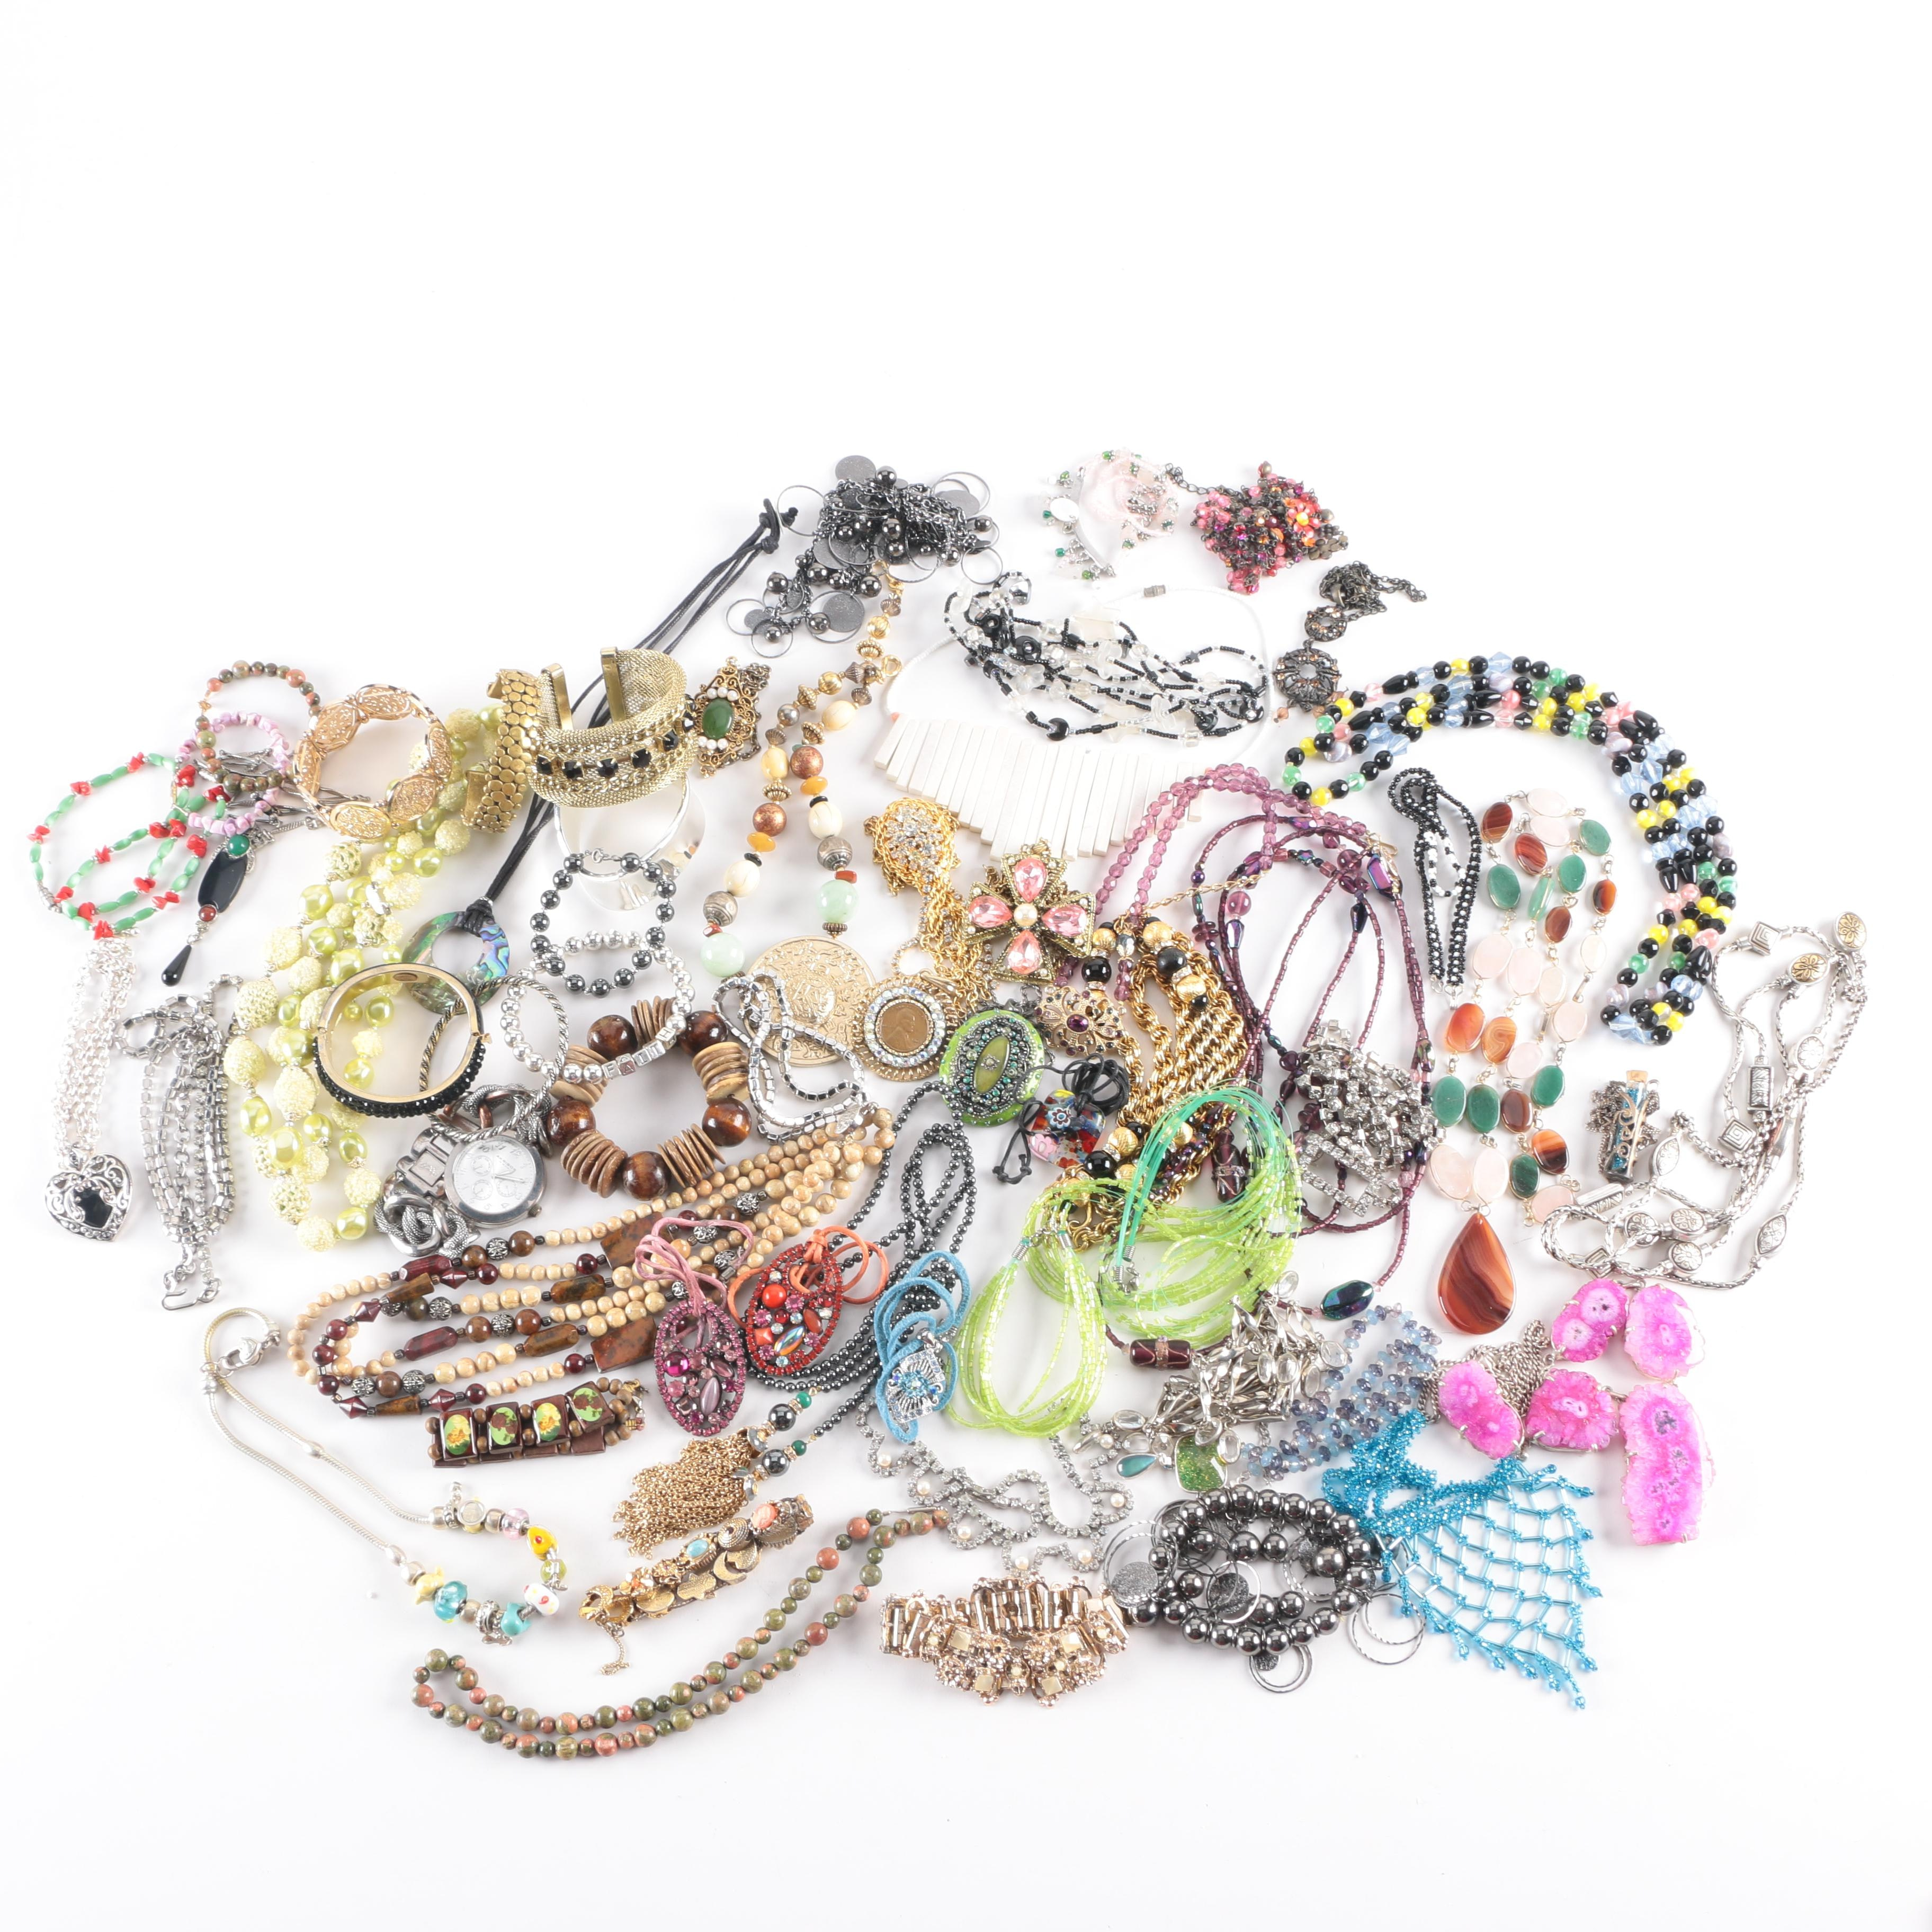 Costume Jewelry Including Richard Kerr, Bellini, Weiss, and Mary Demarco